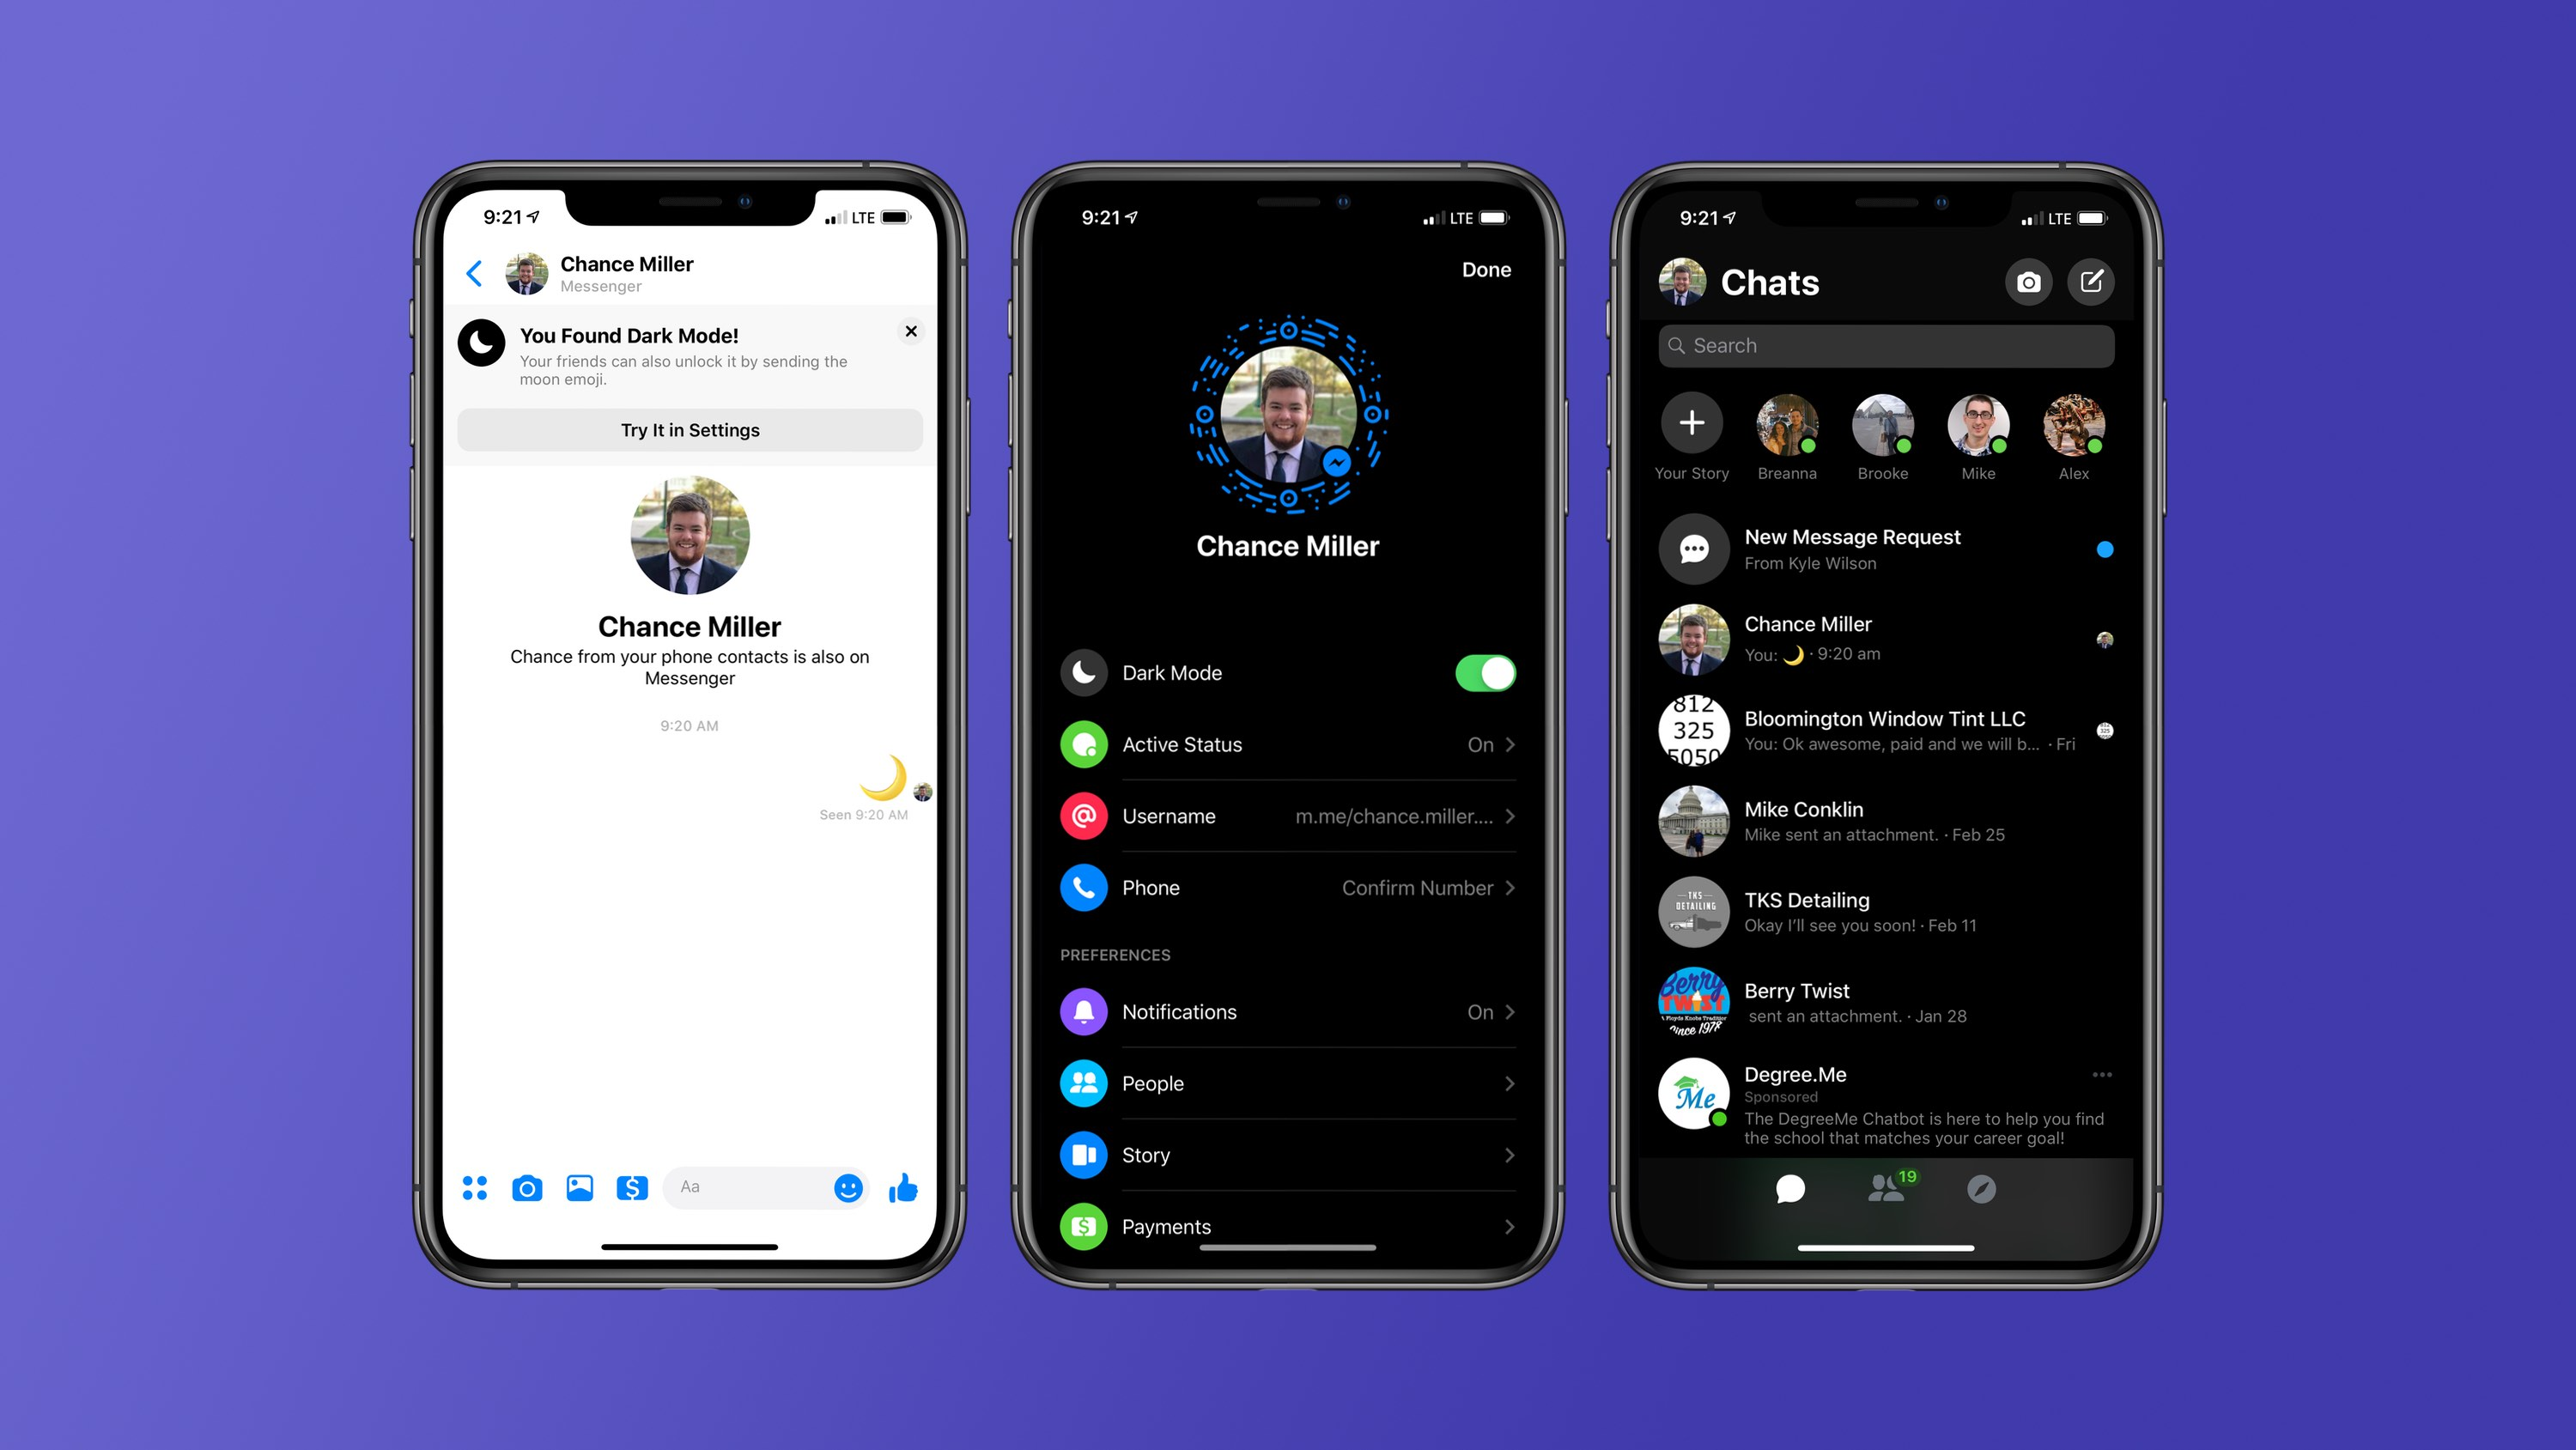 Facebook Messenger Dark Mode How To Enable Hidden Setting 9to5mac Facebook's dark mode is currently a beta version for desktop and mobile that only some users how to enable facebook's dark mode setting on an android. facebook messenger dark mode how to